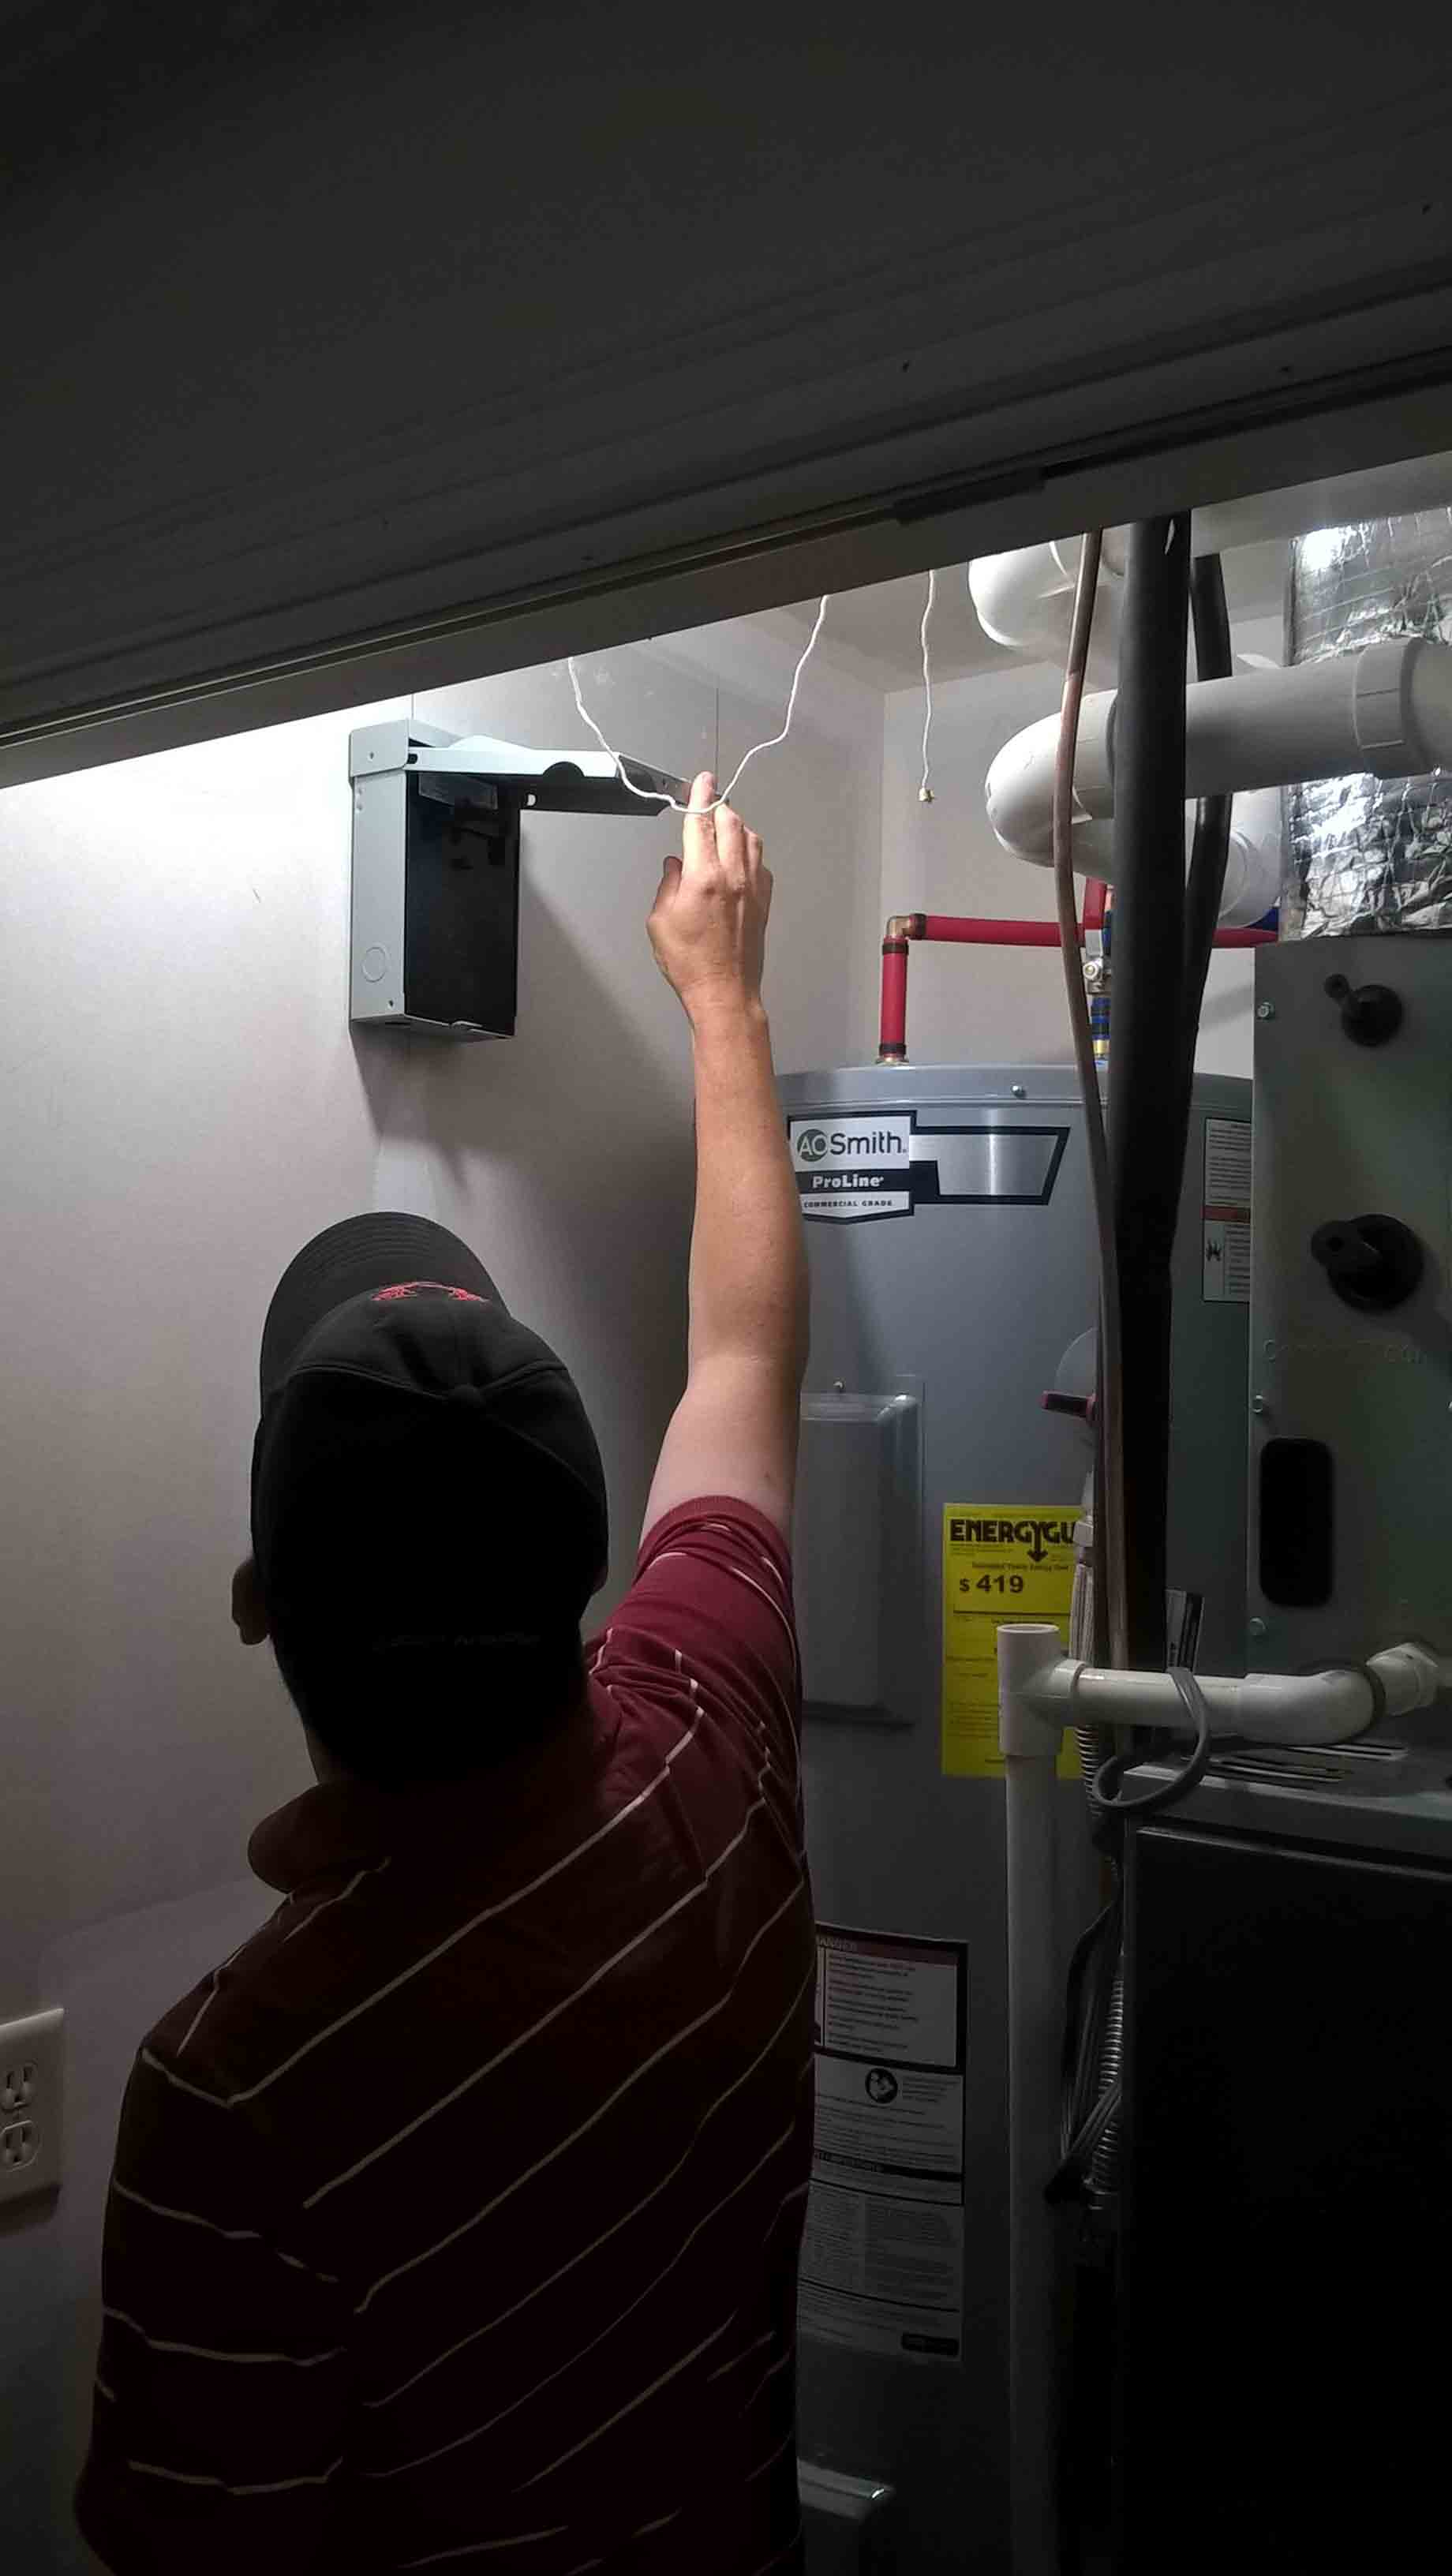 Building Inspector Checking Electrical Panel